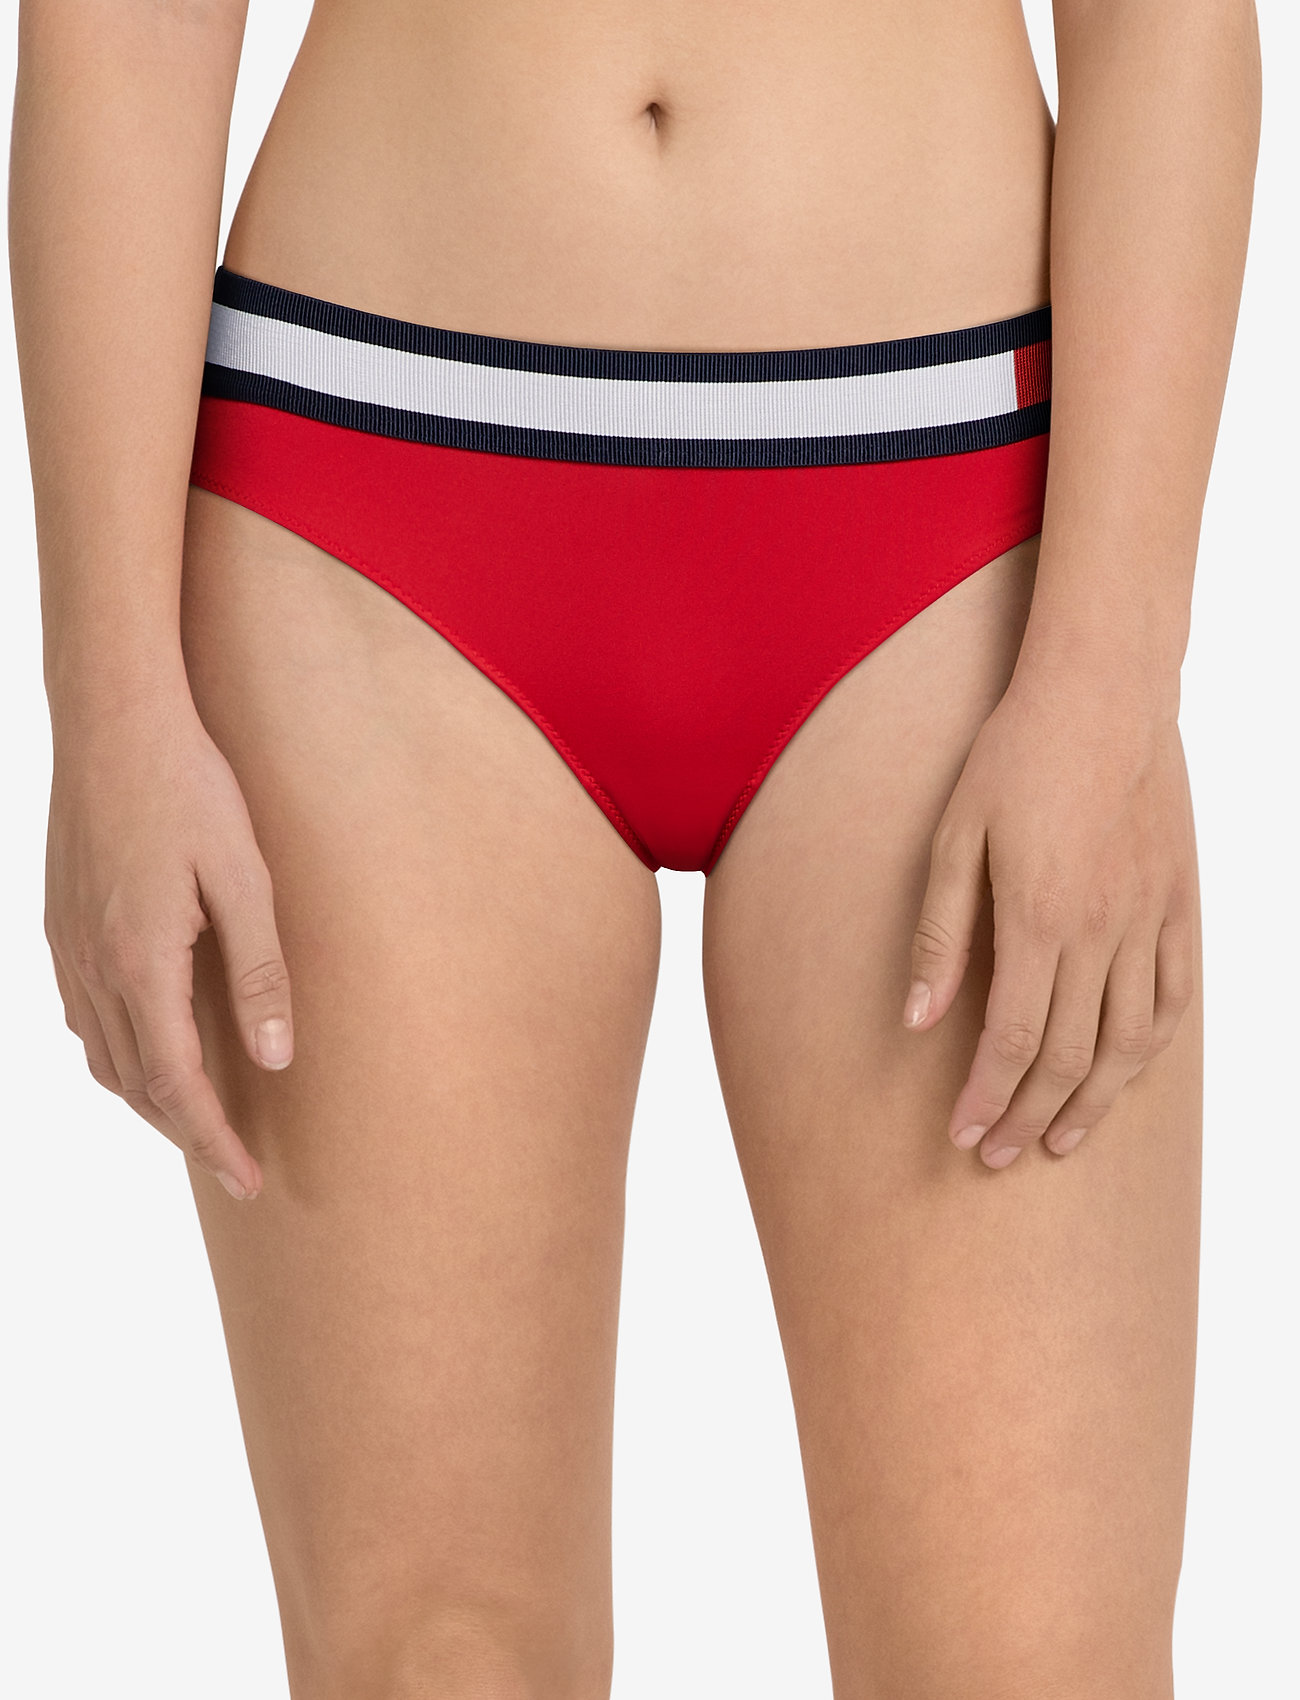 Tommy Hilfiger THONG - TANGO RED